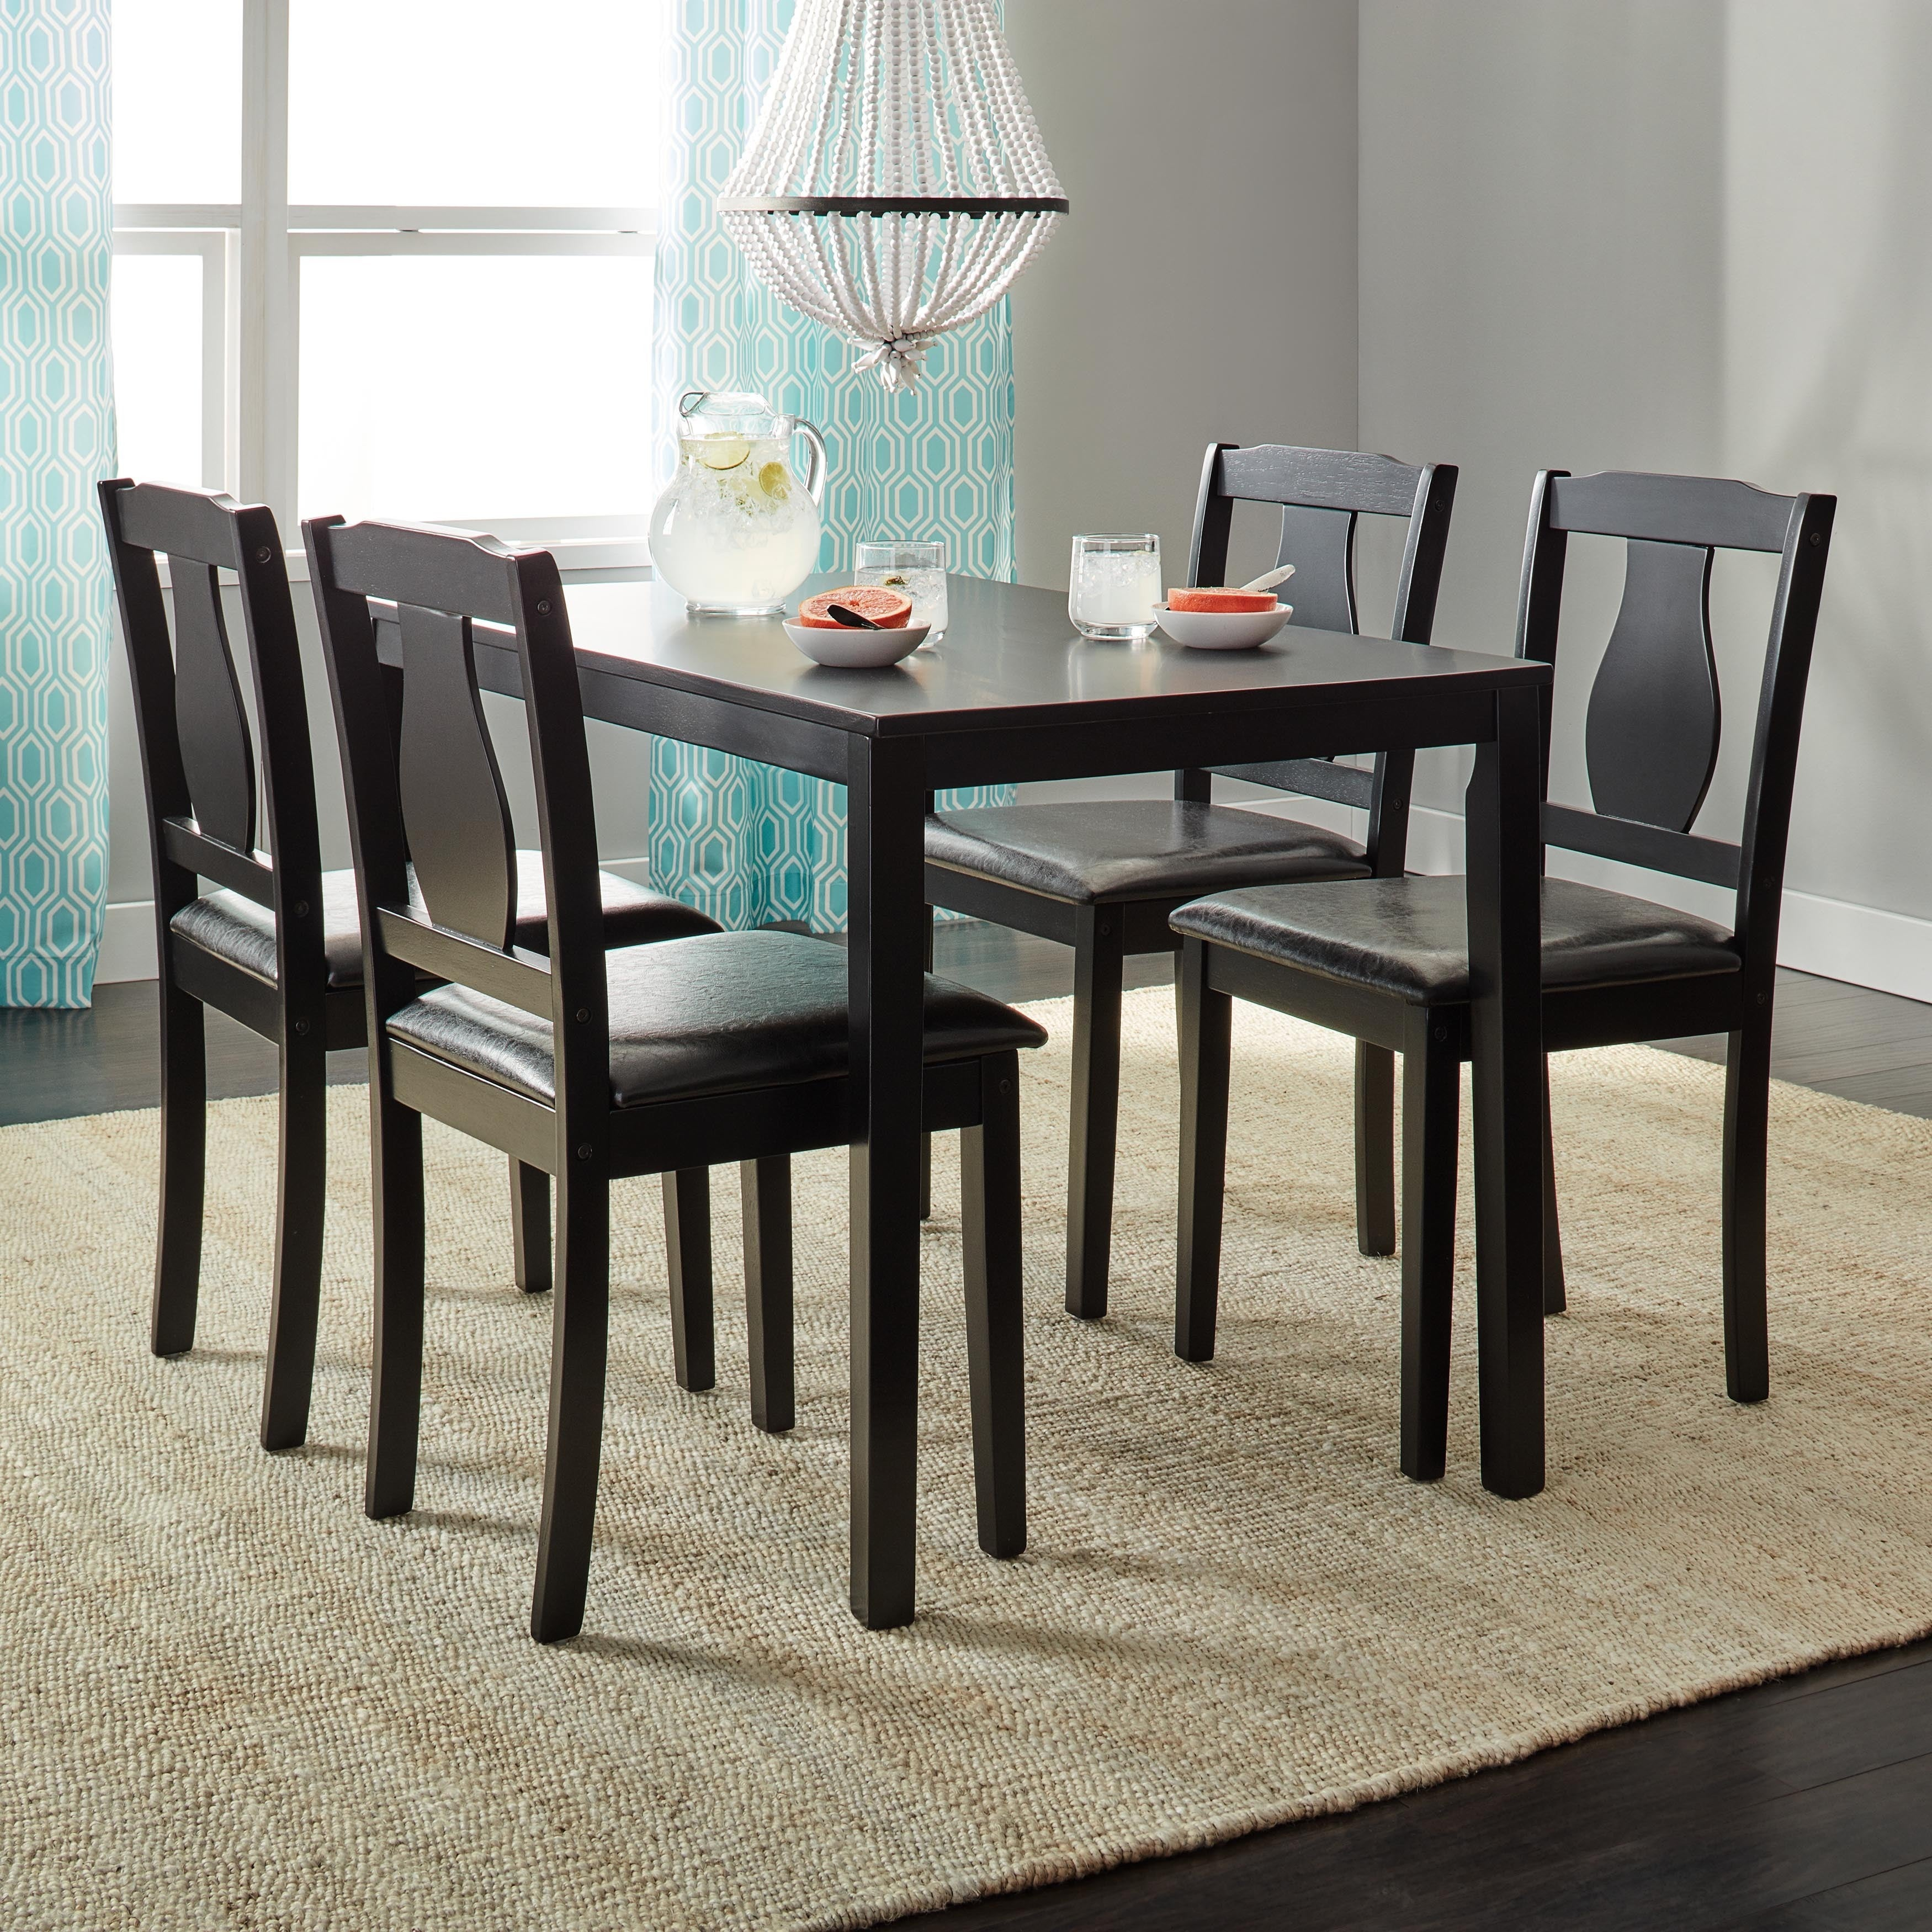 shop simple living black 5 piece kaylee dining set free shipping rh overstock com simple dining room table decor simple dining room table design